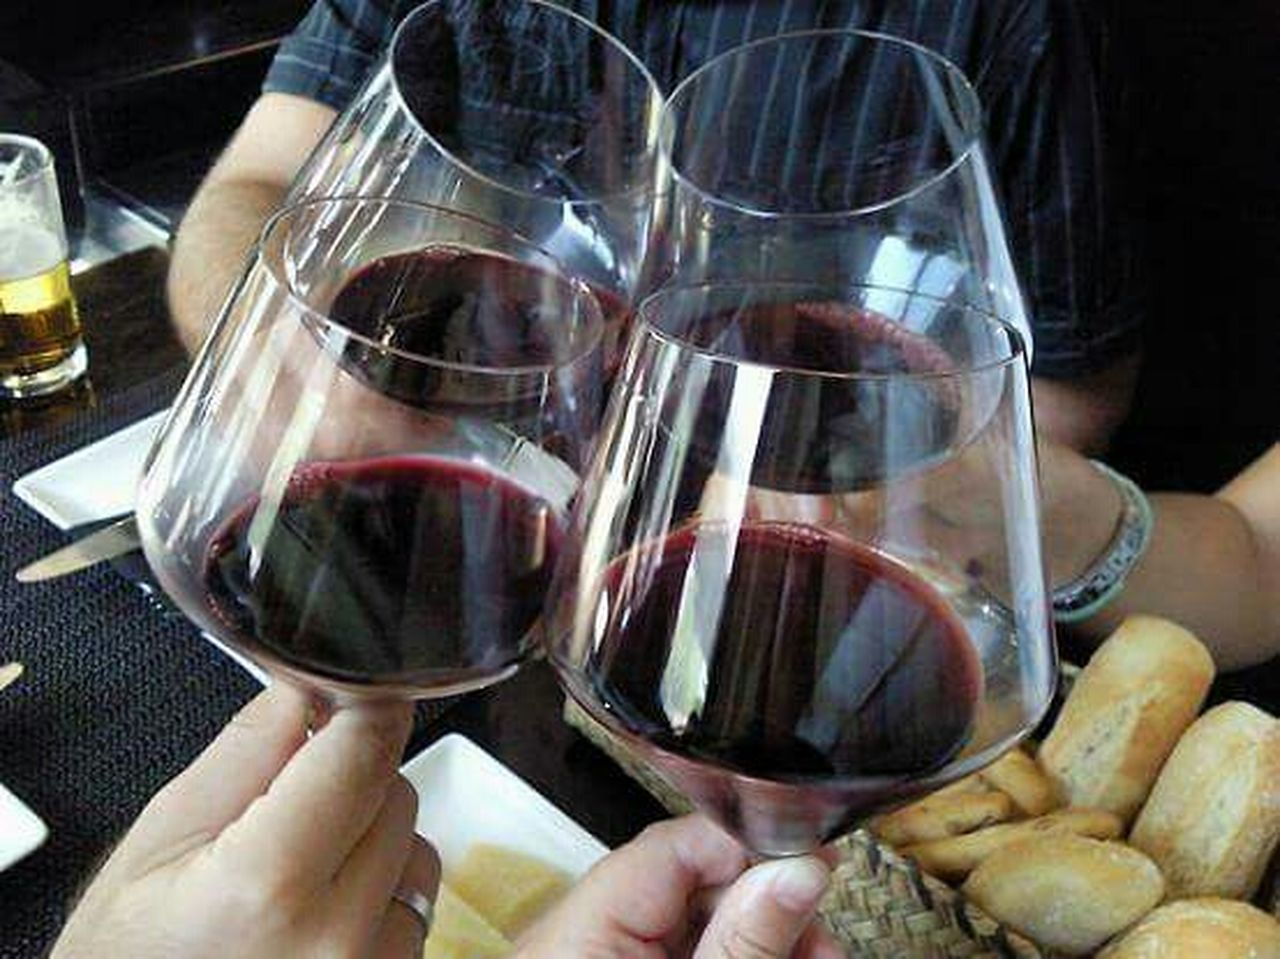 wineglass, wine, red wine, human body part, human hand, food and drink, holding, alcohol, people, adults only, adult, drink, drinking, close-up, one person, indoors, drinking glass, day, men, only women, winetasting, freshness